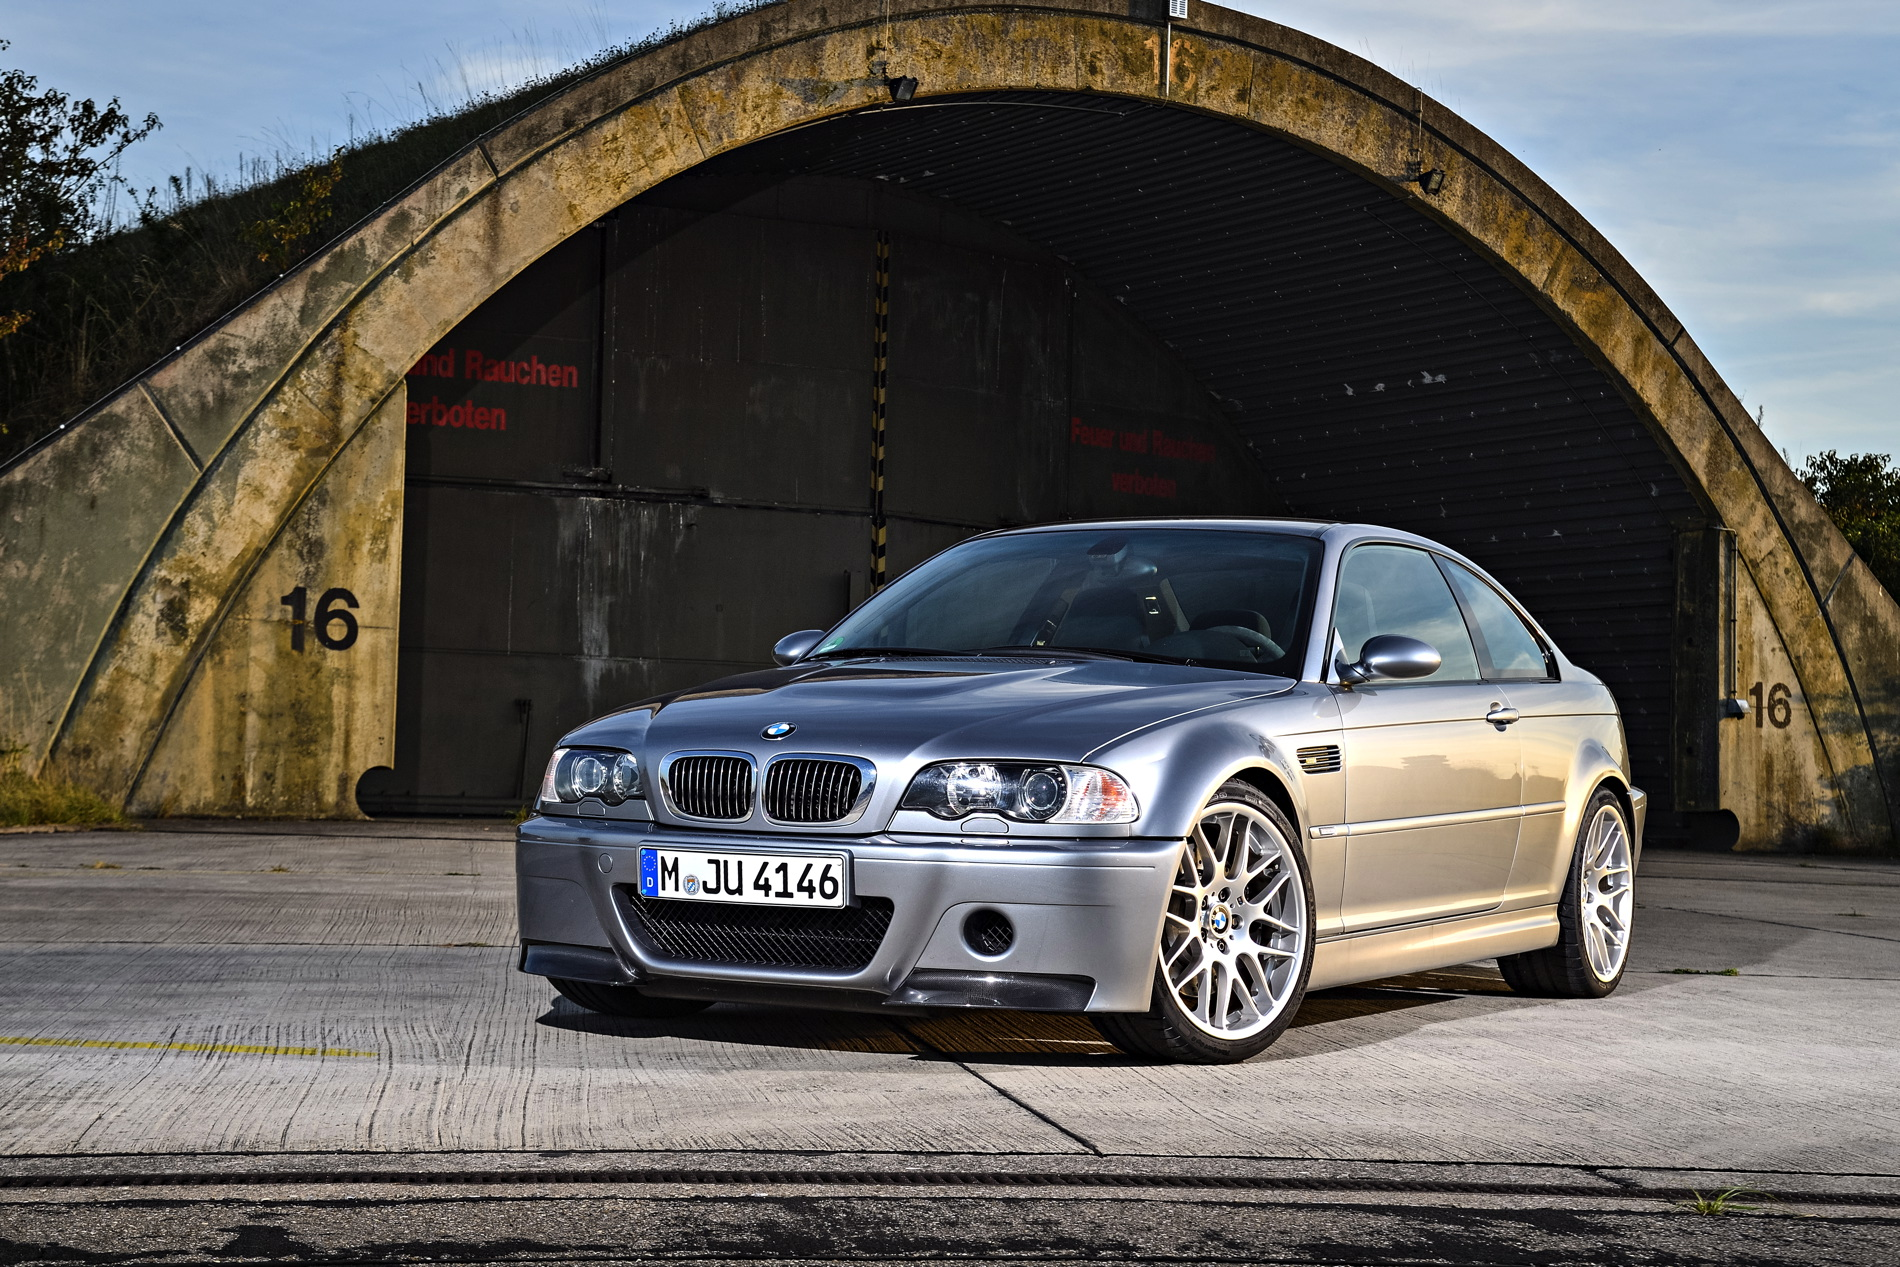 Bimmer/Beemer/Beamer: A Brief History of of Traditional BMW Nicknames